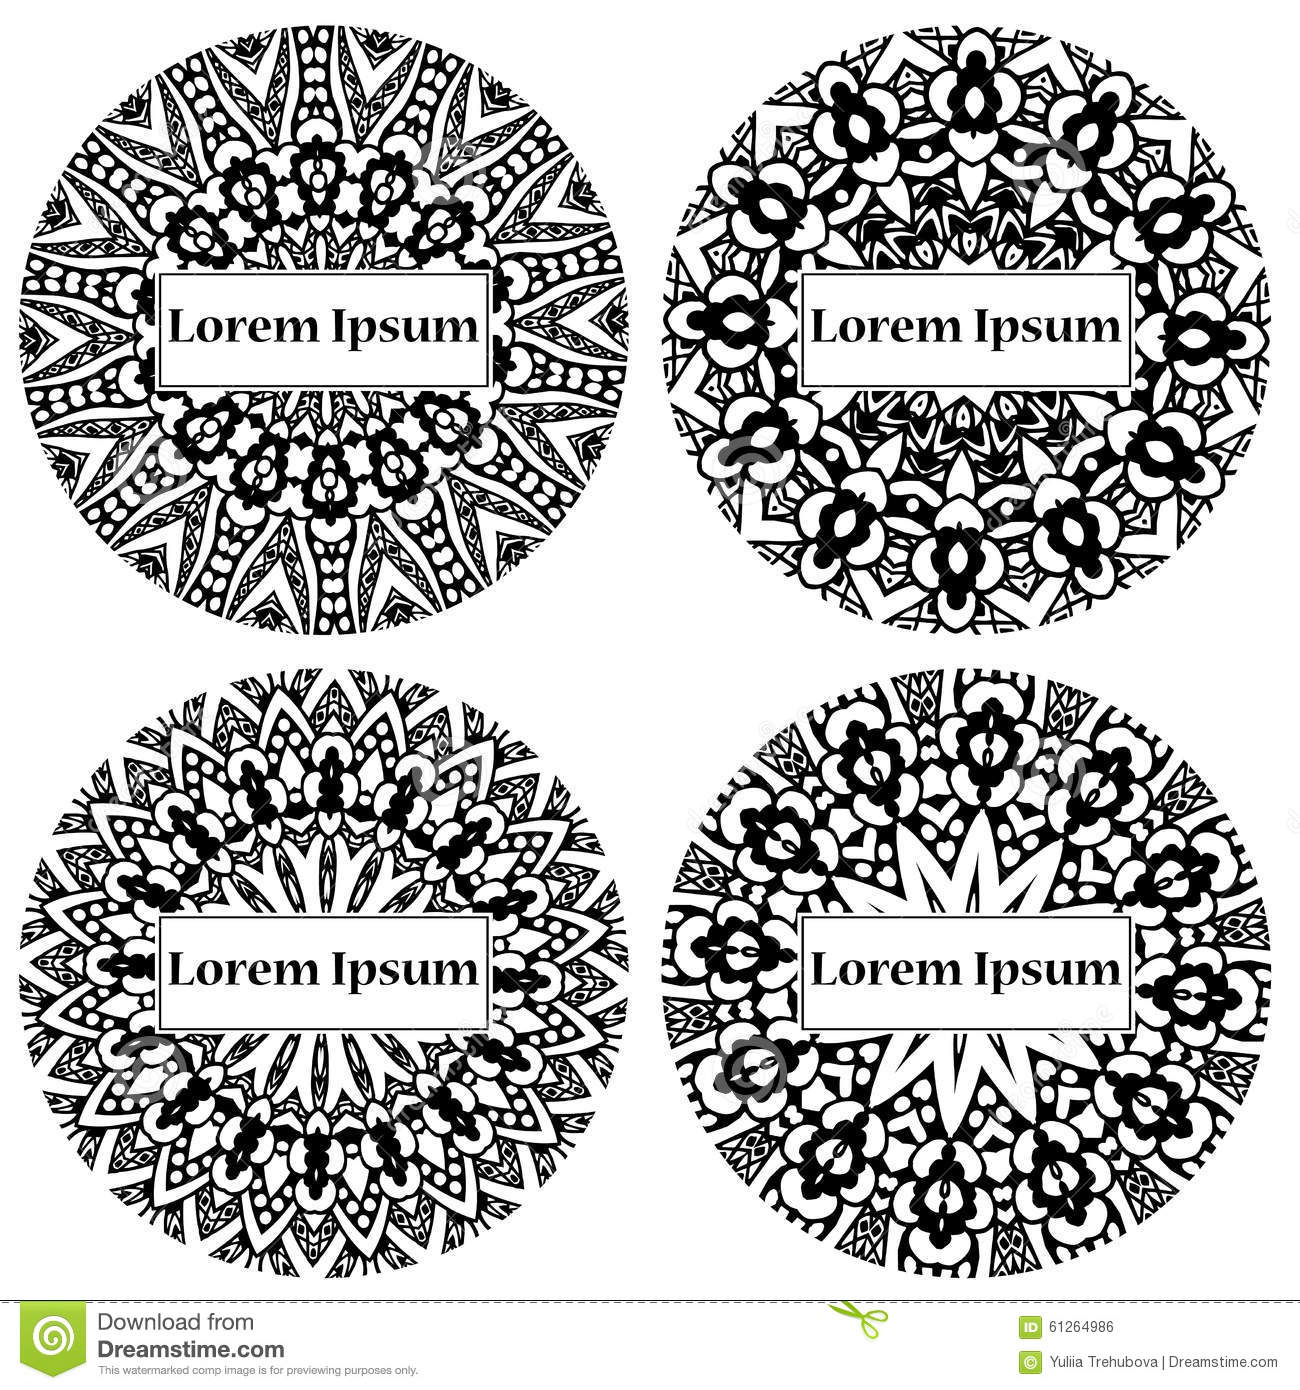 Mandala circle design abstract lace ornament vector illustration download comp stopboris Gallery